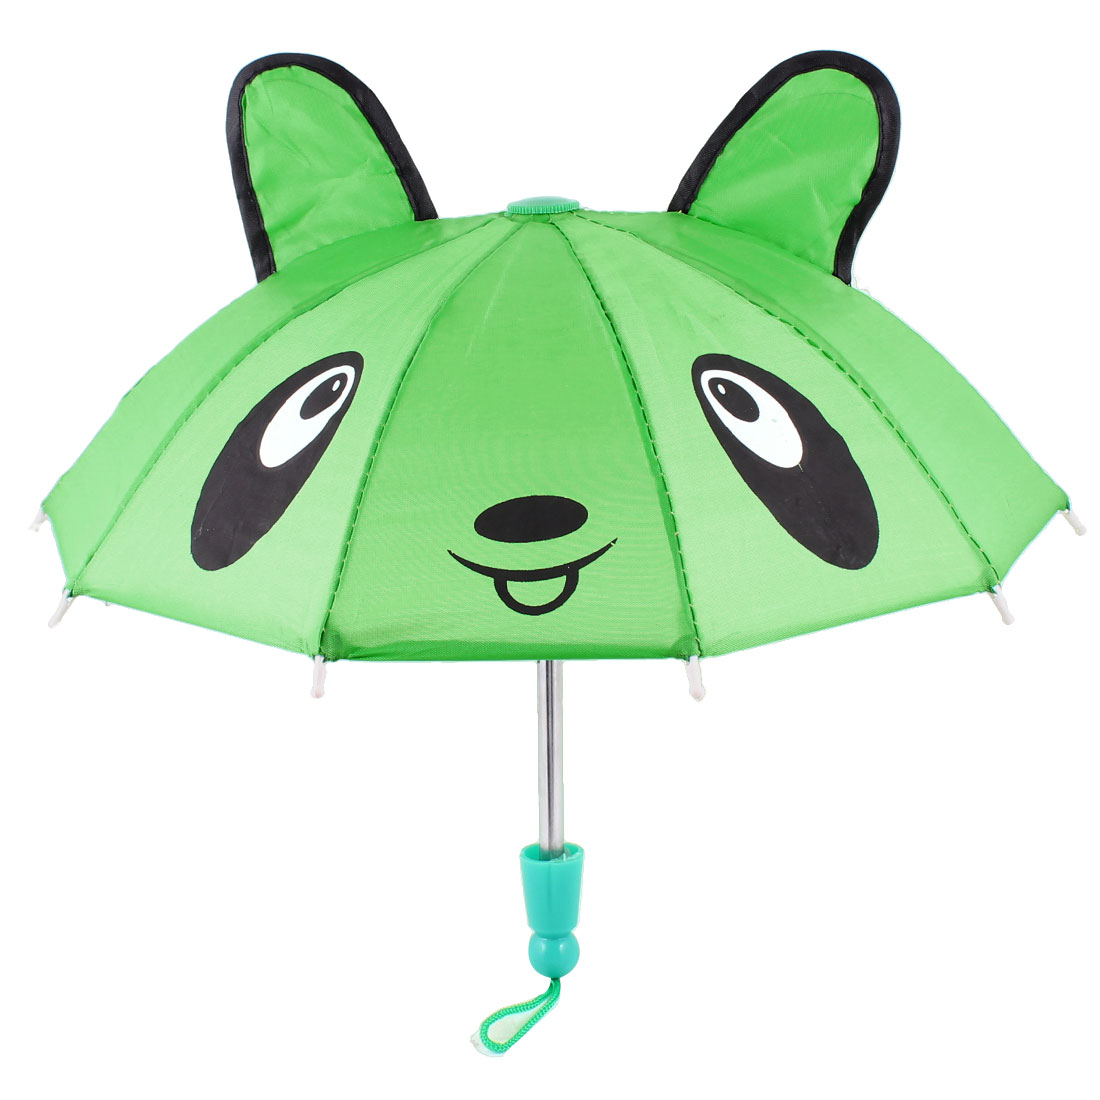 Bear Head Printed Green Mini Animal Umbrella Toy for